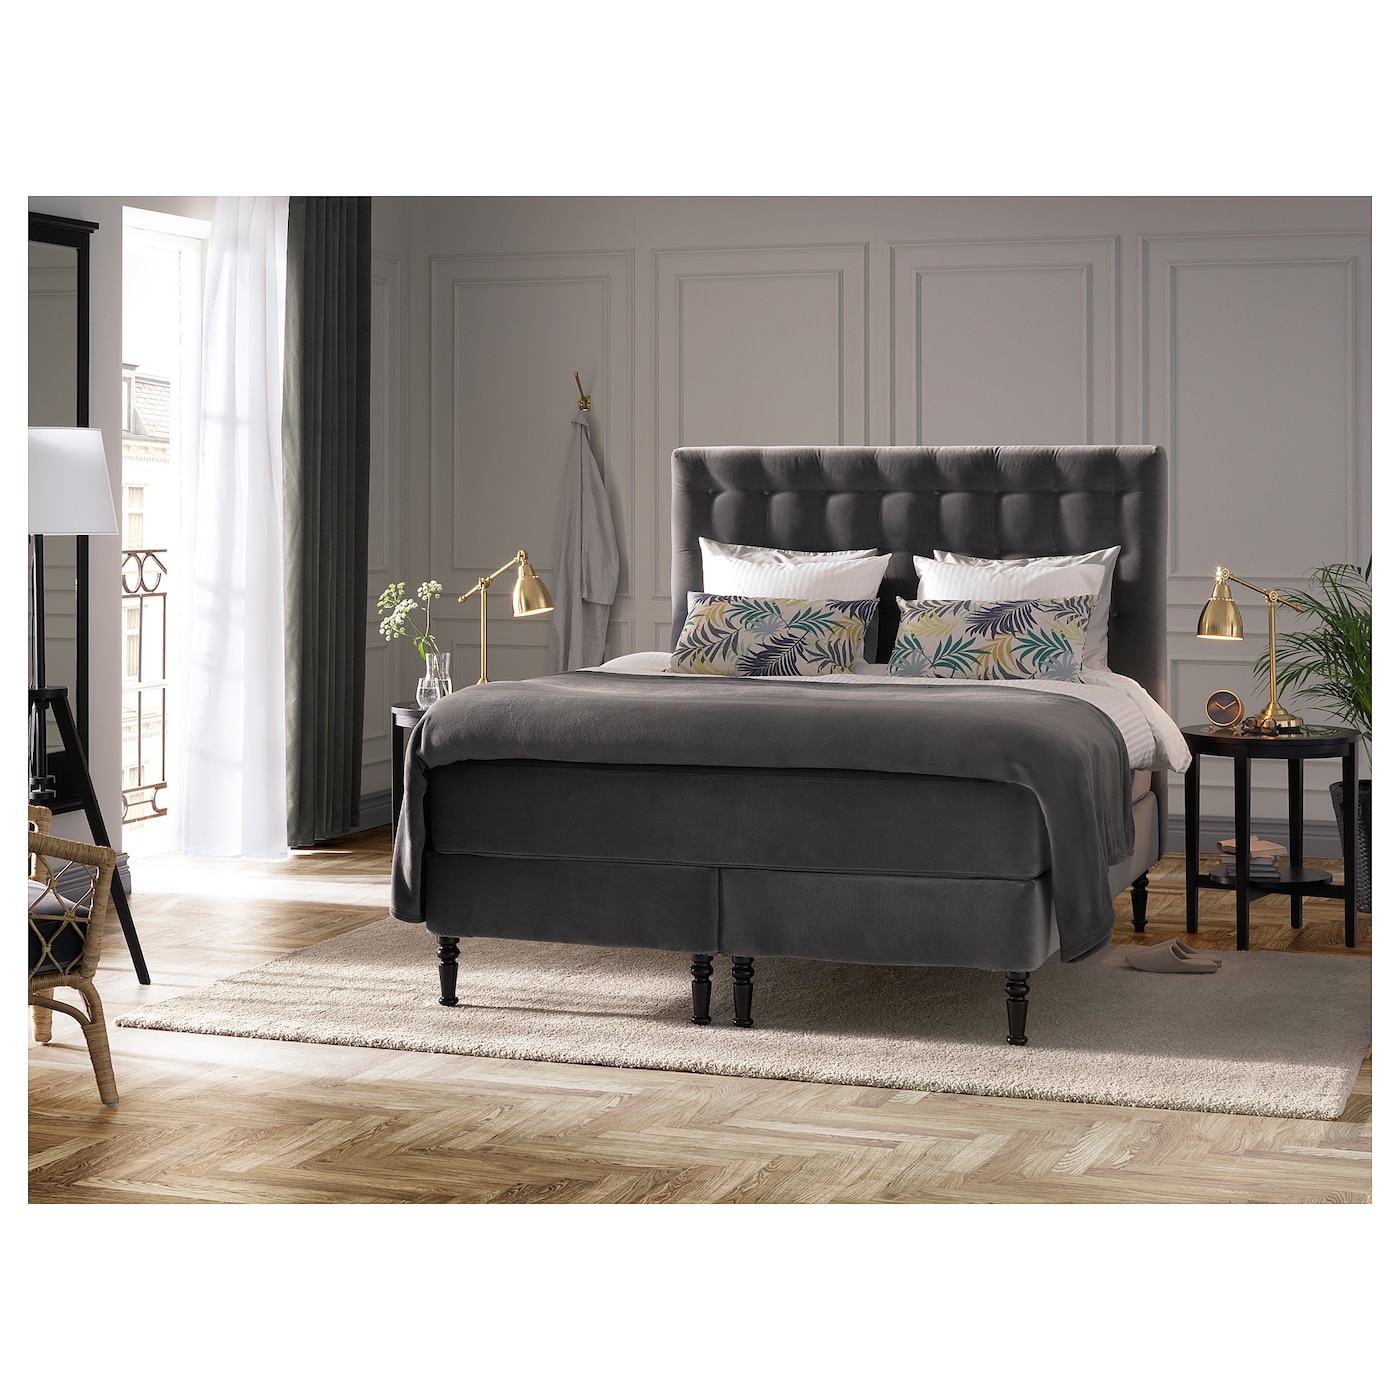 kongsfjord lit sommier hyllestad mi ferme tustna gris fonc 160x200 cm ikea. Black Bedroom Furniture Sets. Home Design Ideas